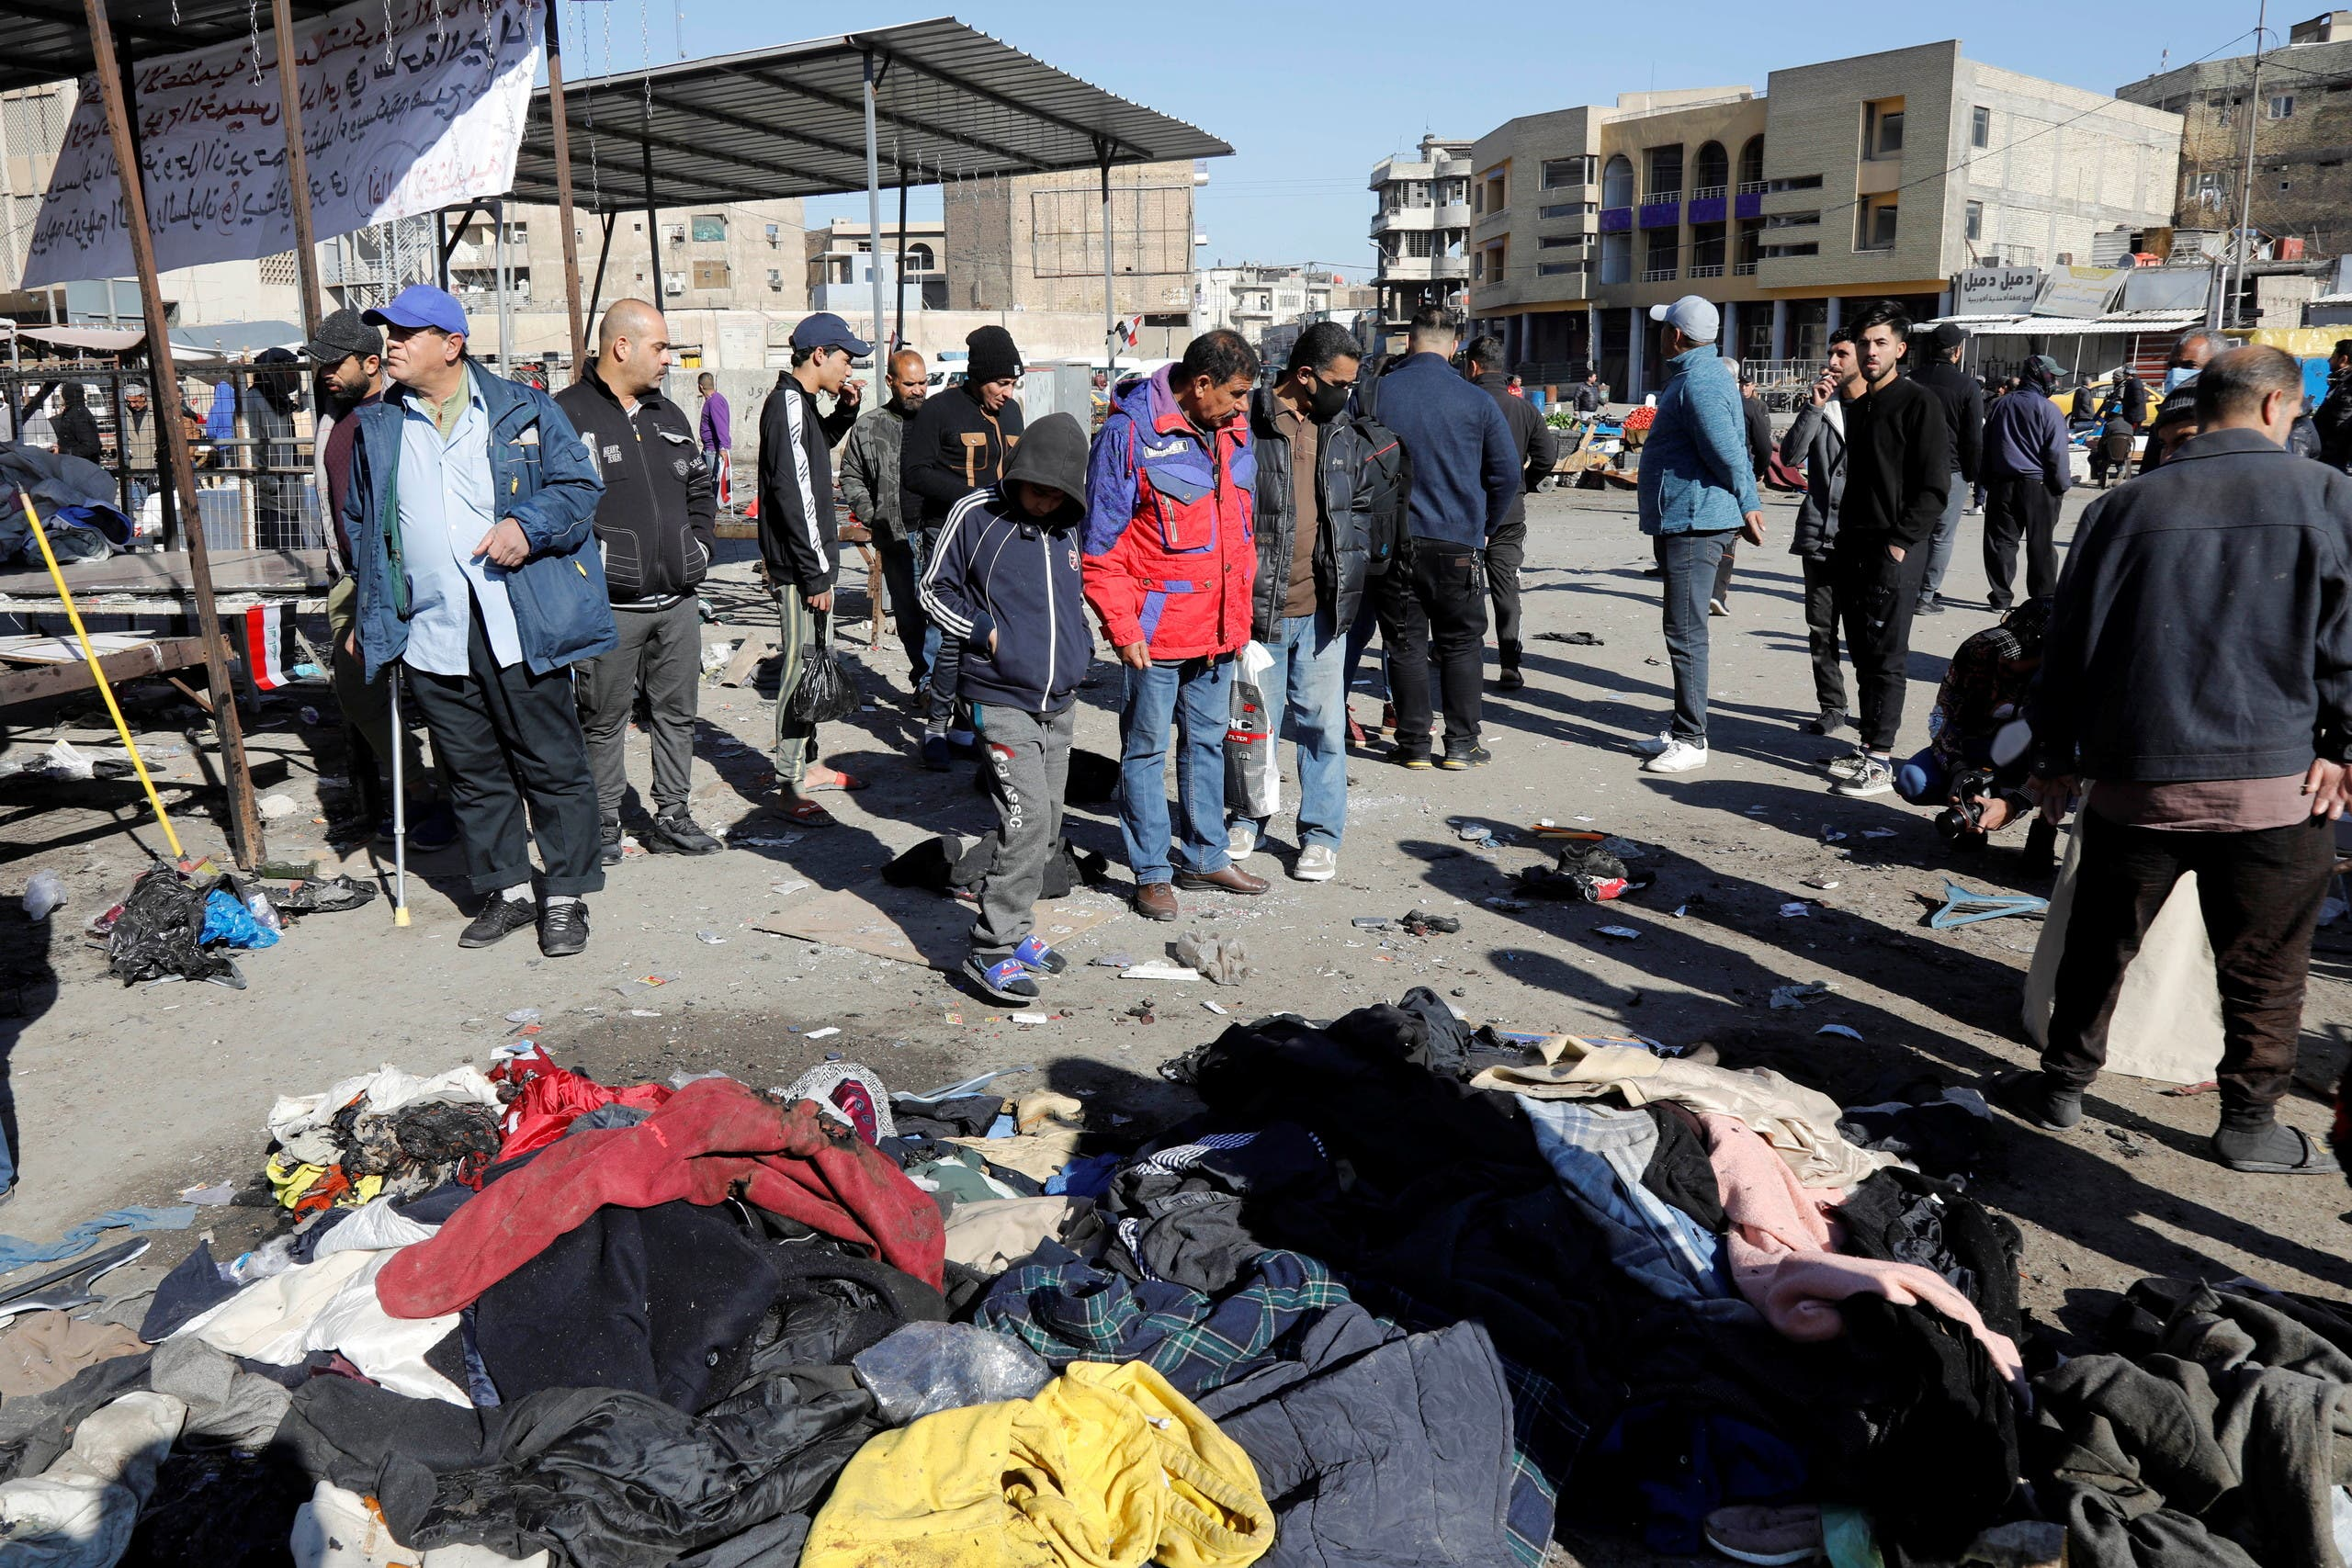 People gather at the damaged site in the aftermath of a twin suicide bombing attack in a central market, in Baghdad, Iraq January 22, 2021. (Reuters/Khalid al-Mousily)